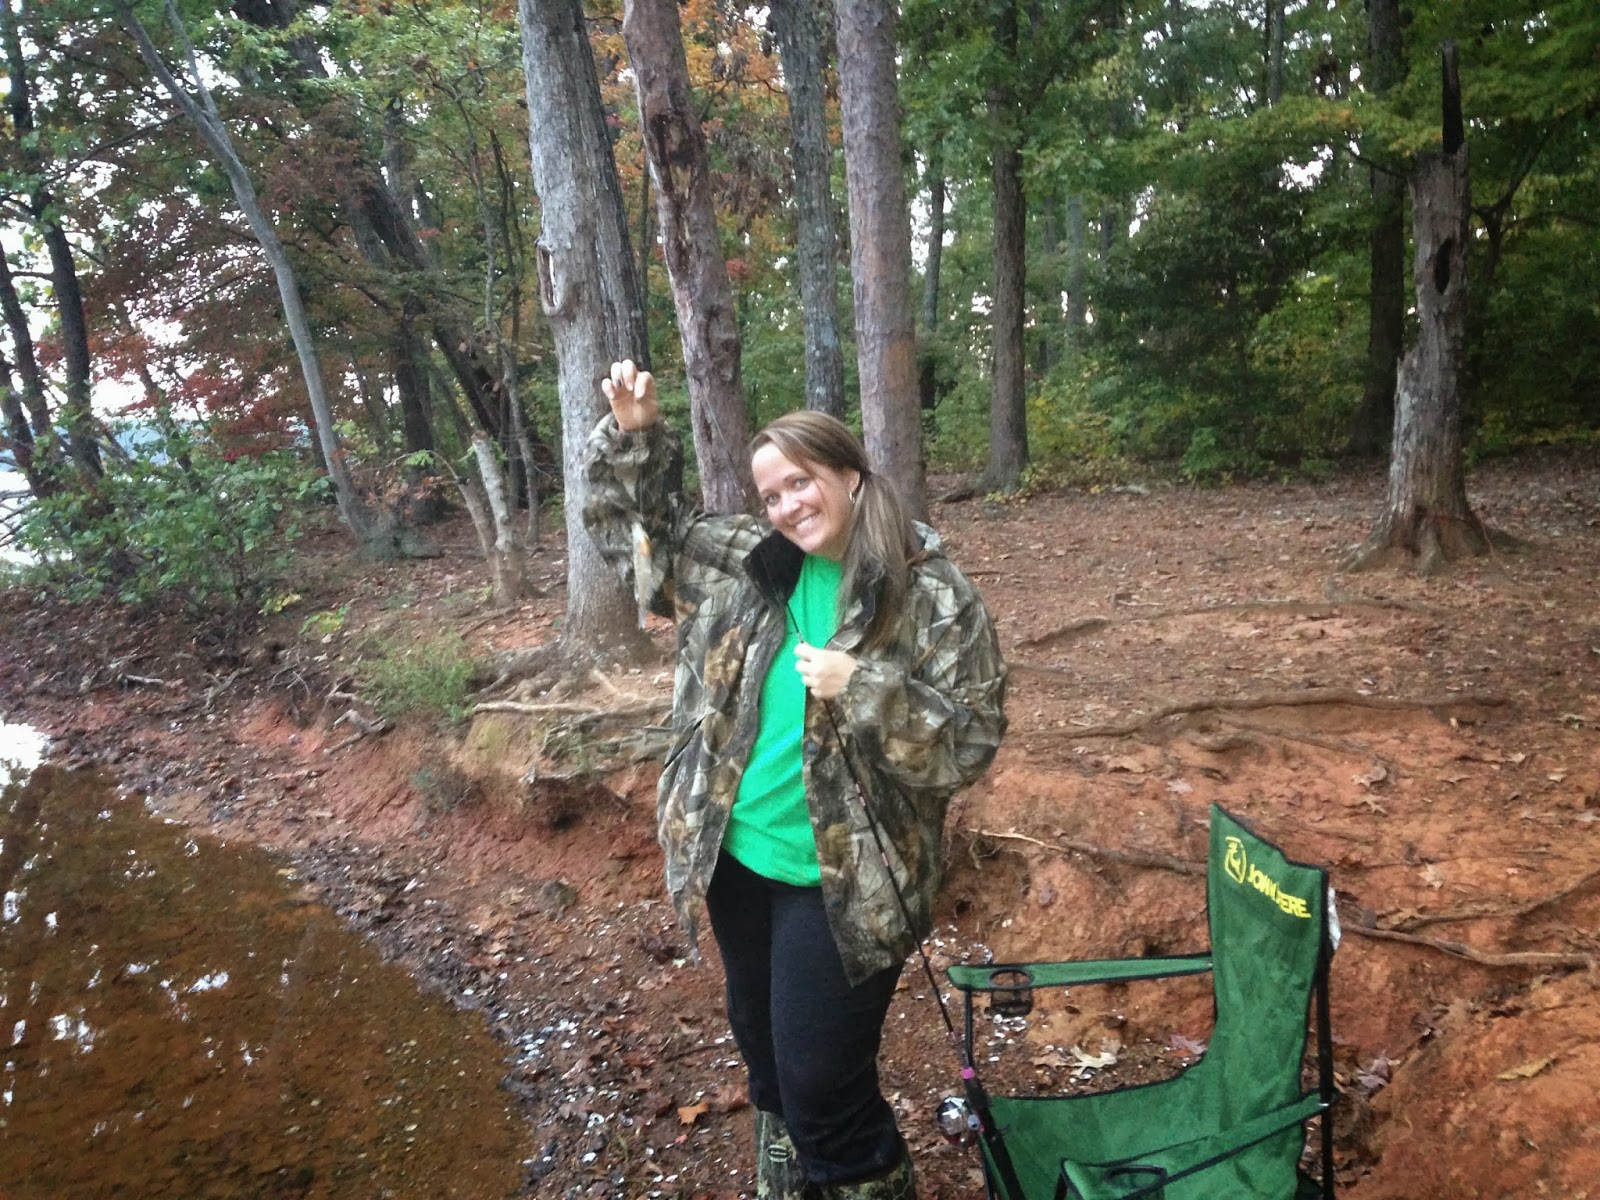 NC BACKCOUNTRY: BADIN LAKE CAMPGROUND IN THE UWHARRIE ...